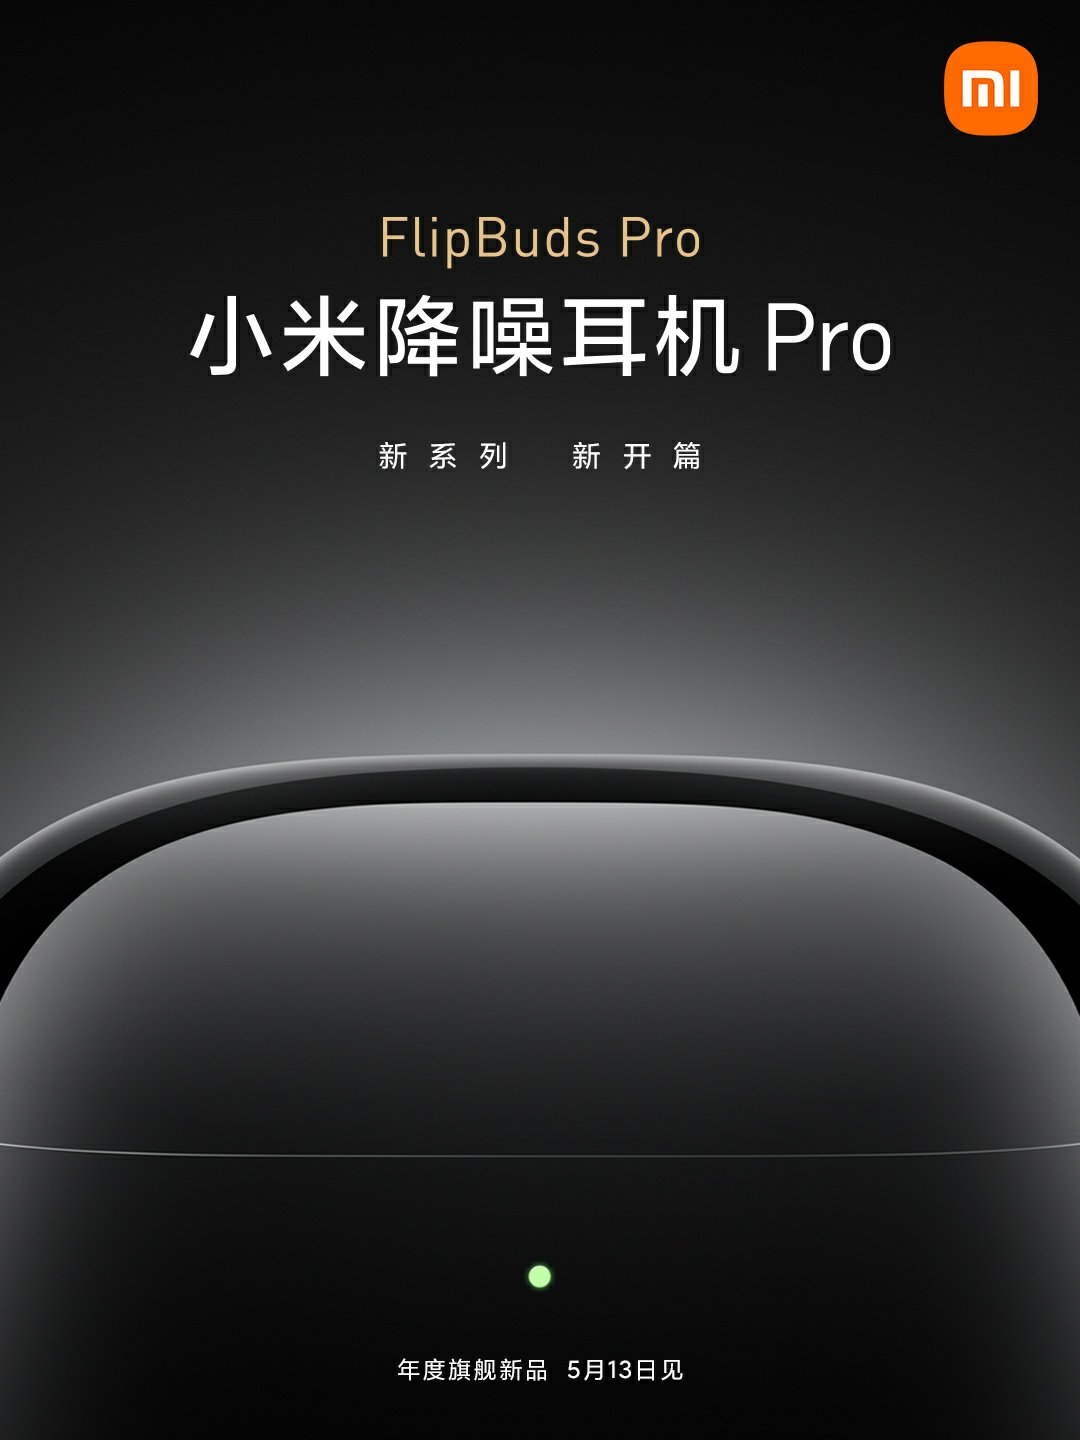 Mi FlipBuds Pro will Benchmark Apple AirPods Pro with a Fresh Start